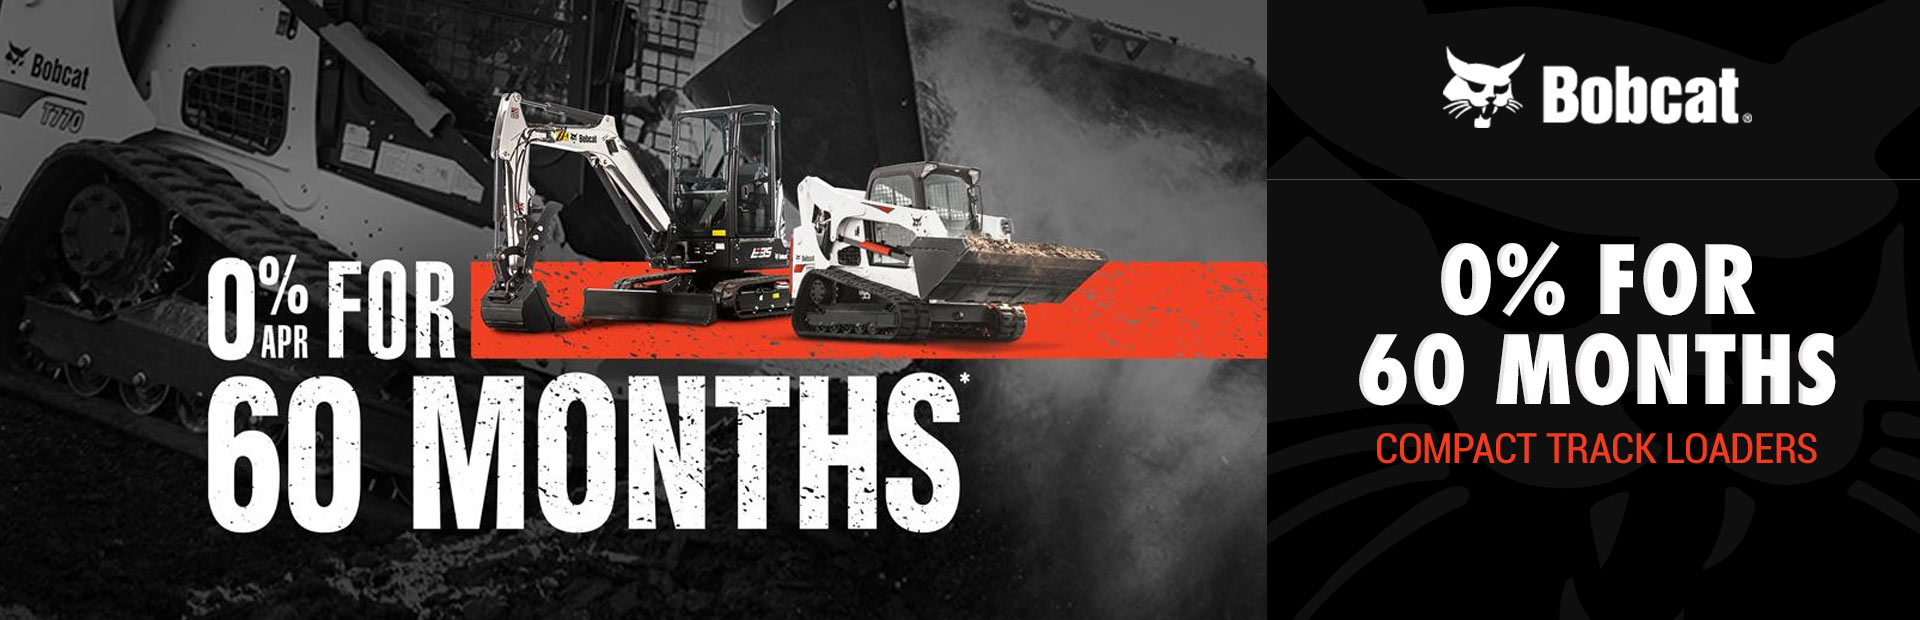 Bobcat: 0% for 60 Months for Compact Track Loaders